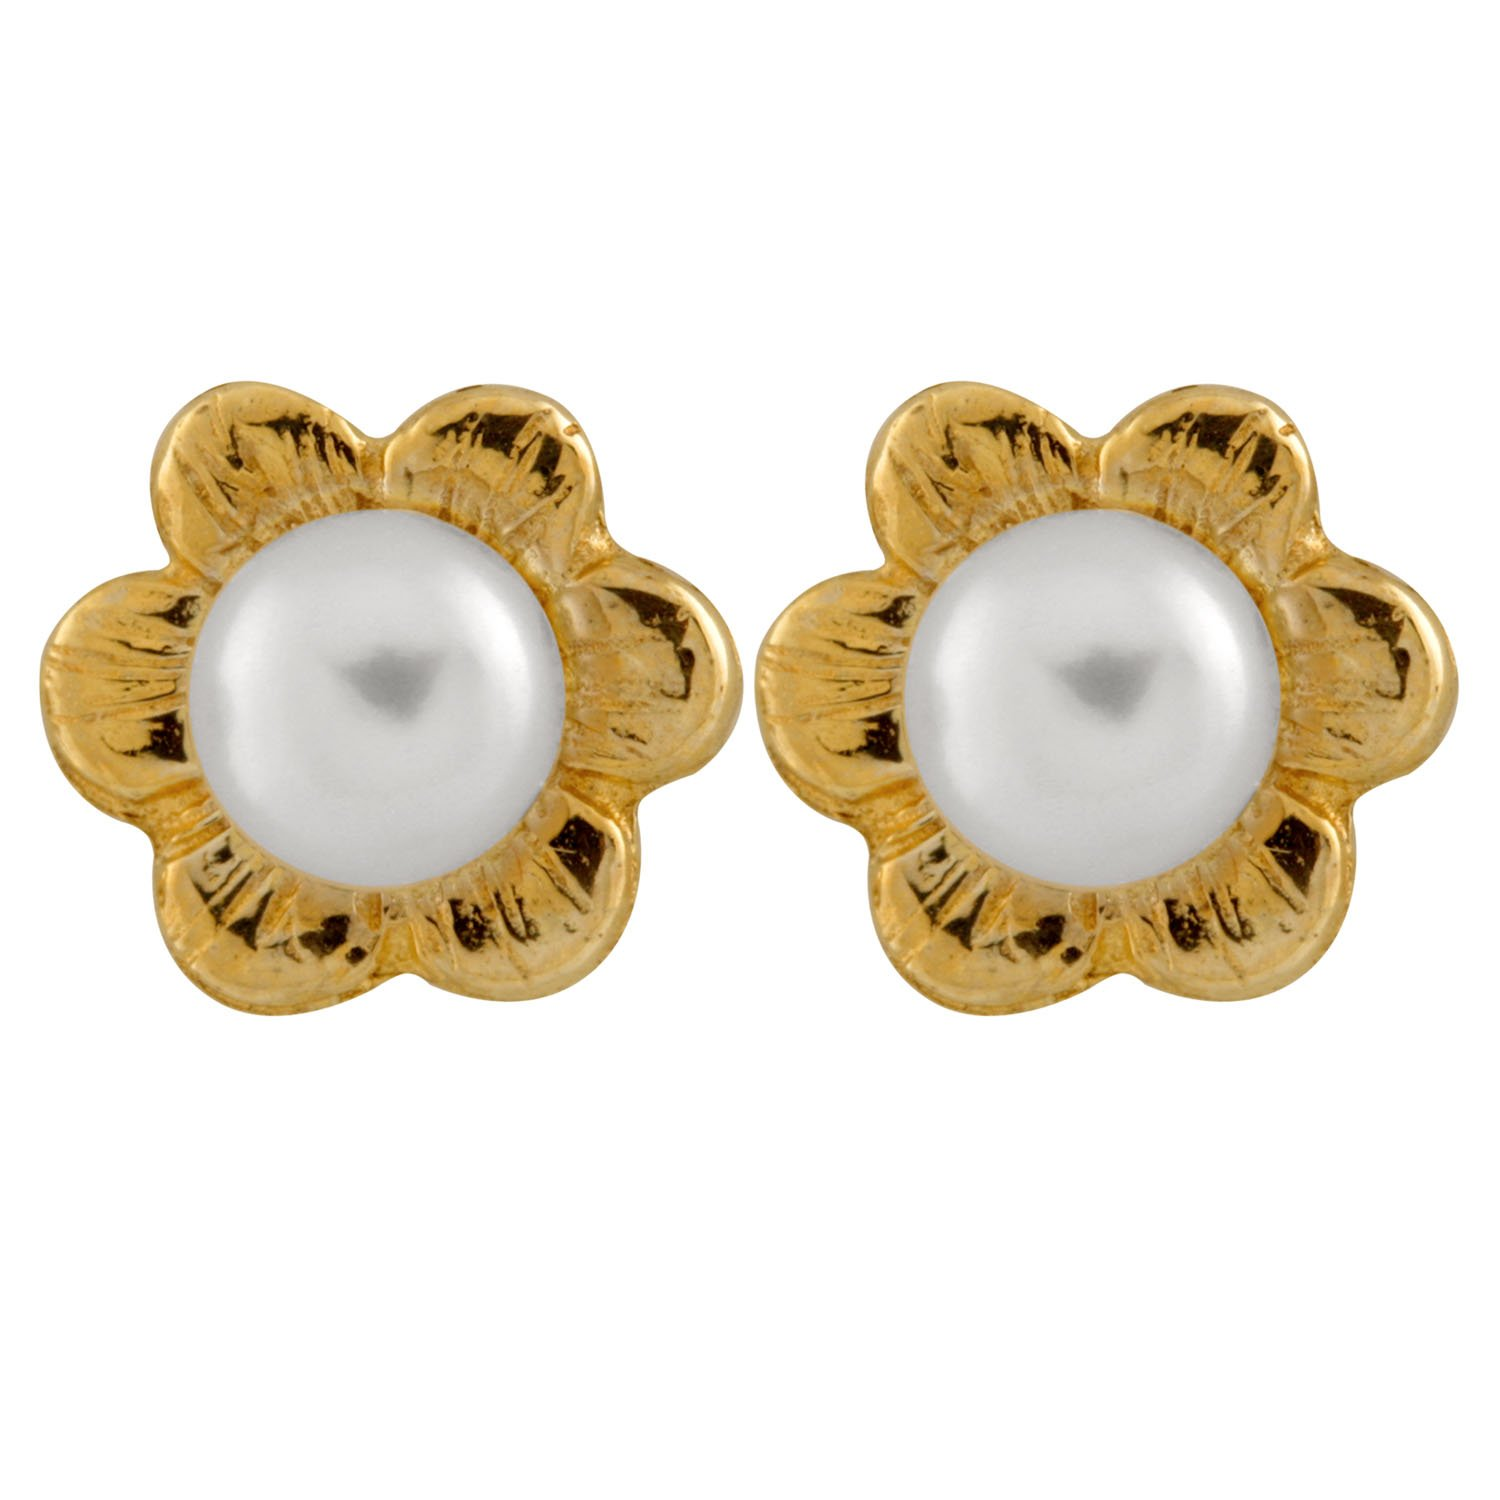 14K Yellow Gold 3.5-4mm Freshwater Cultured Pearls Stud Earrings with 14K YG Butterfly Safety Silicone Push Backs